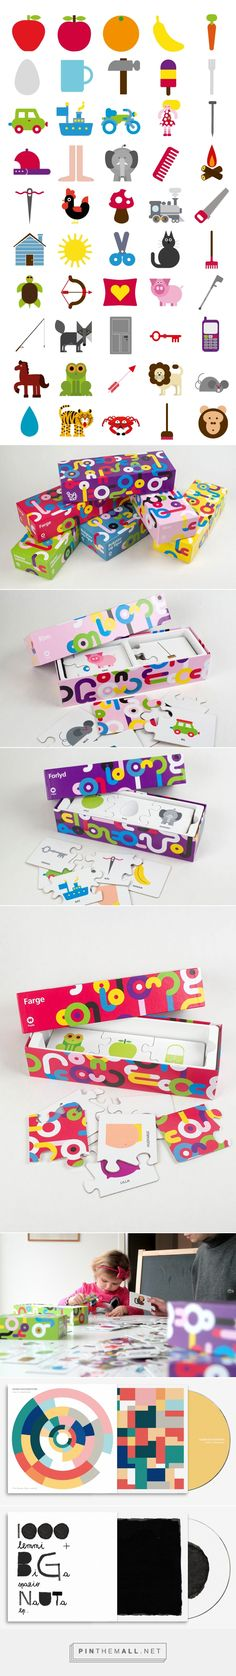 INPED-ABSTRACT-JESS-RAD-AND illustration packaging by Jonathan Calugi on Behance curated by Packaging Diva PD. A series of various projects from pattern to design to icon to illustration to packaging.